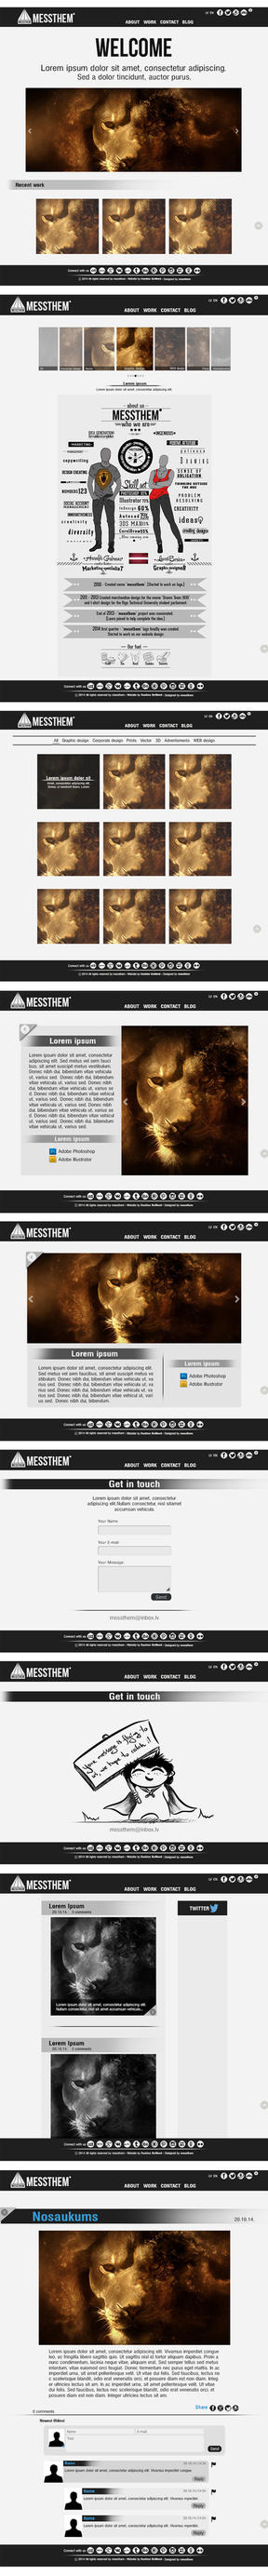 Messthem web page design by messthem